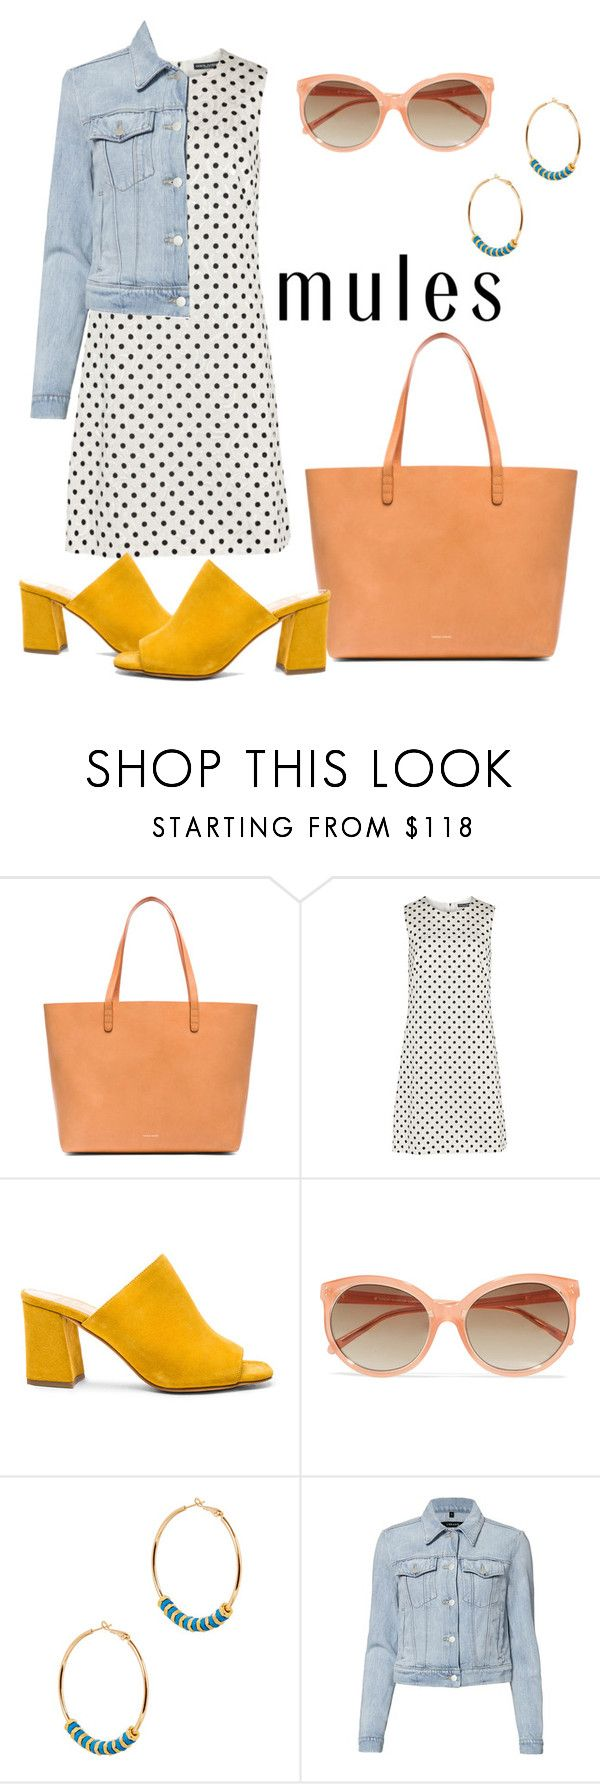 """Madrid"" by silverfishx ❤ liked on Polyvore featuring Mansur Gavriel, Dolce&Gabbana, Maryam Nassir Zadeh, Linda Farrow, Alice Menter, J Brand, Summer, polkadot, mules and minidress"